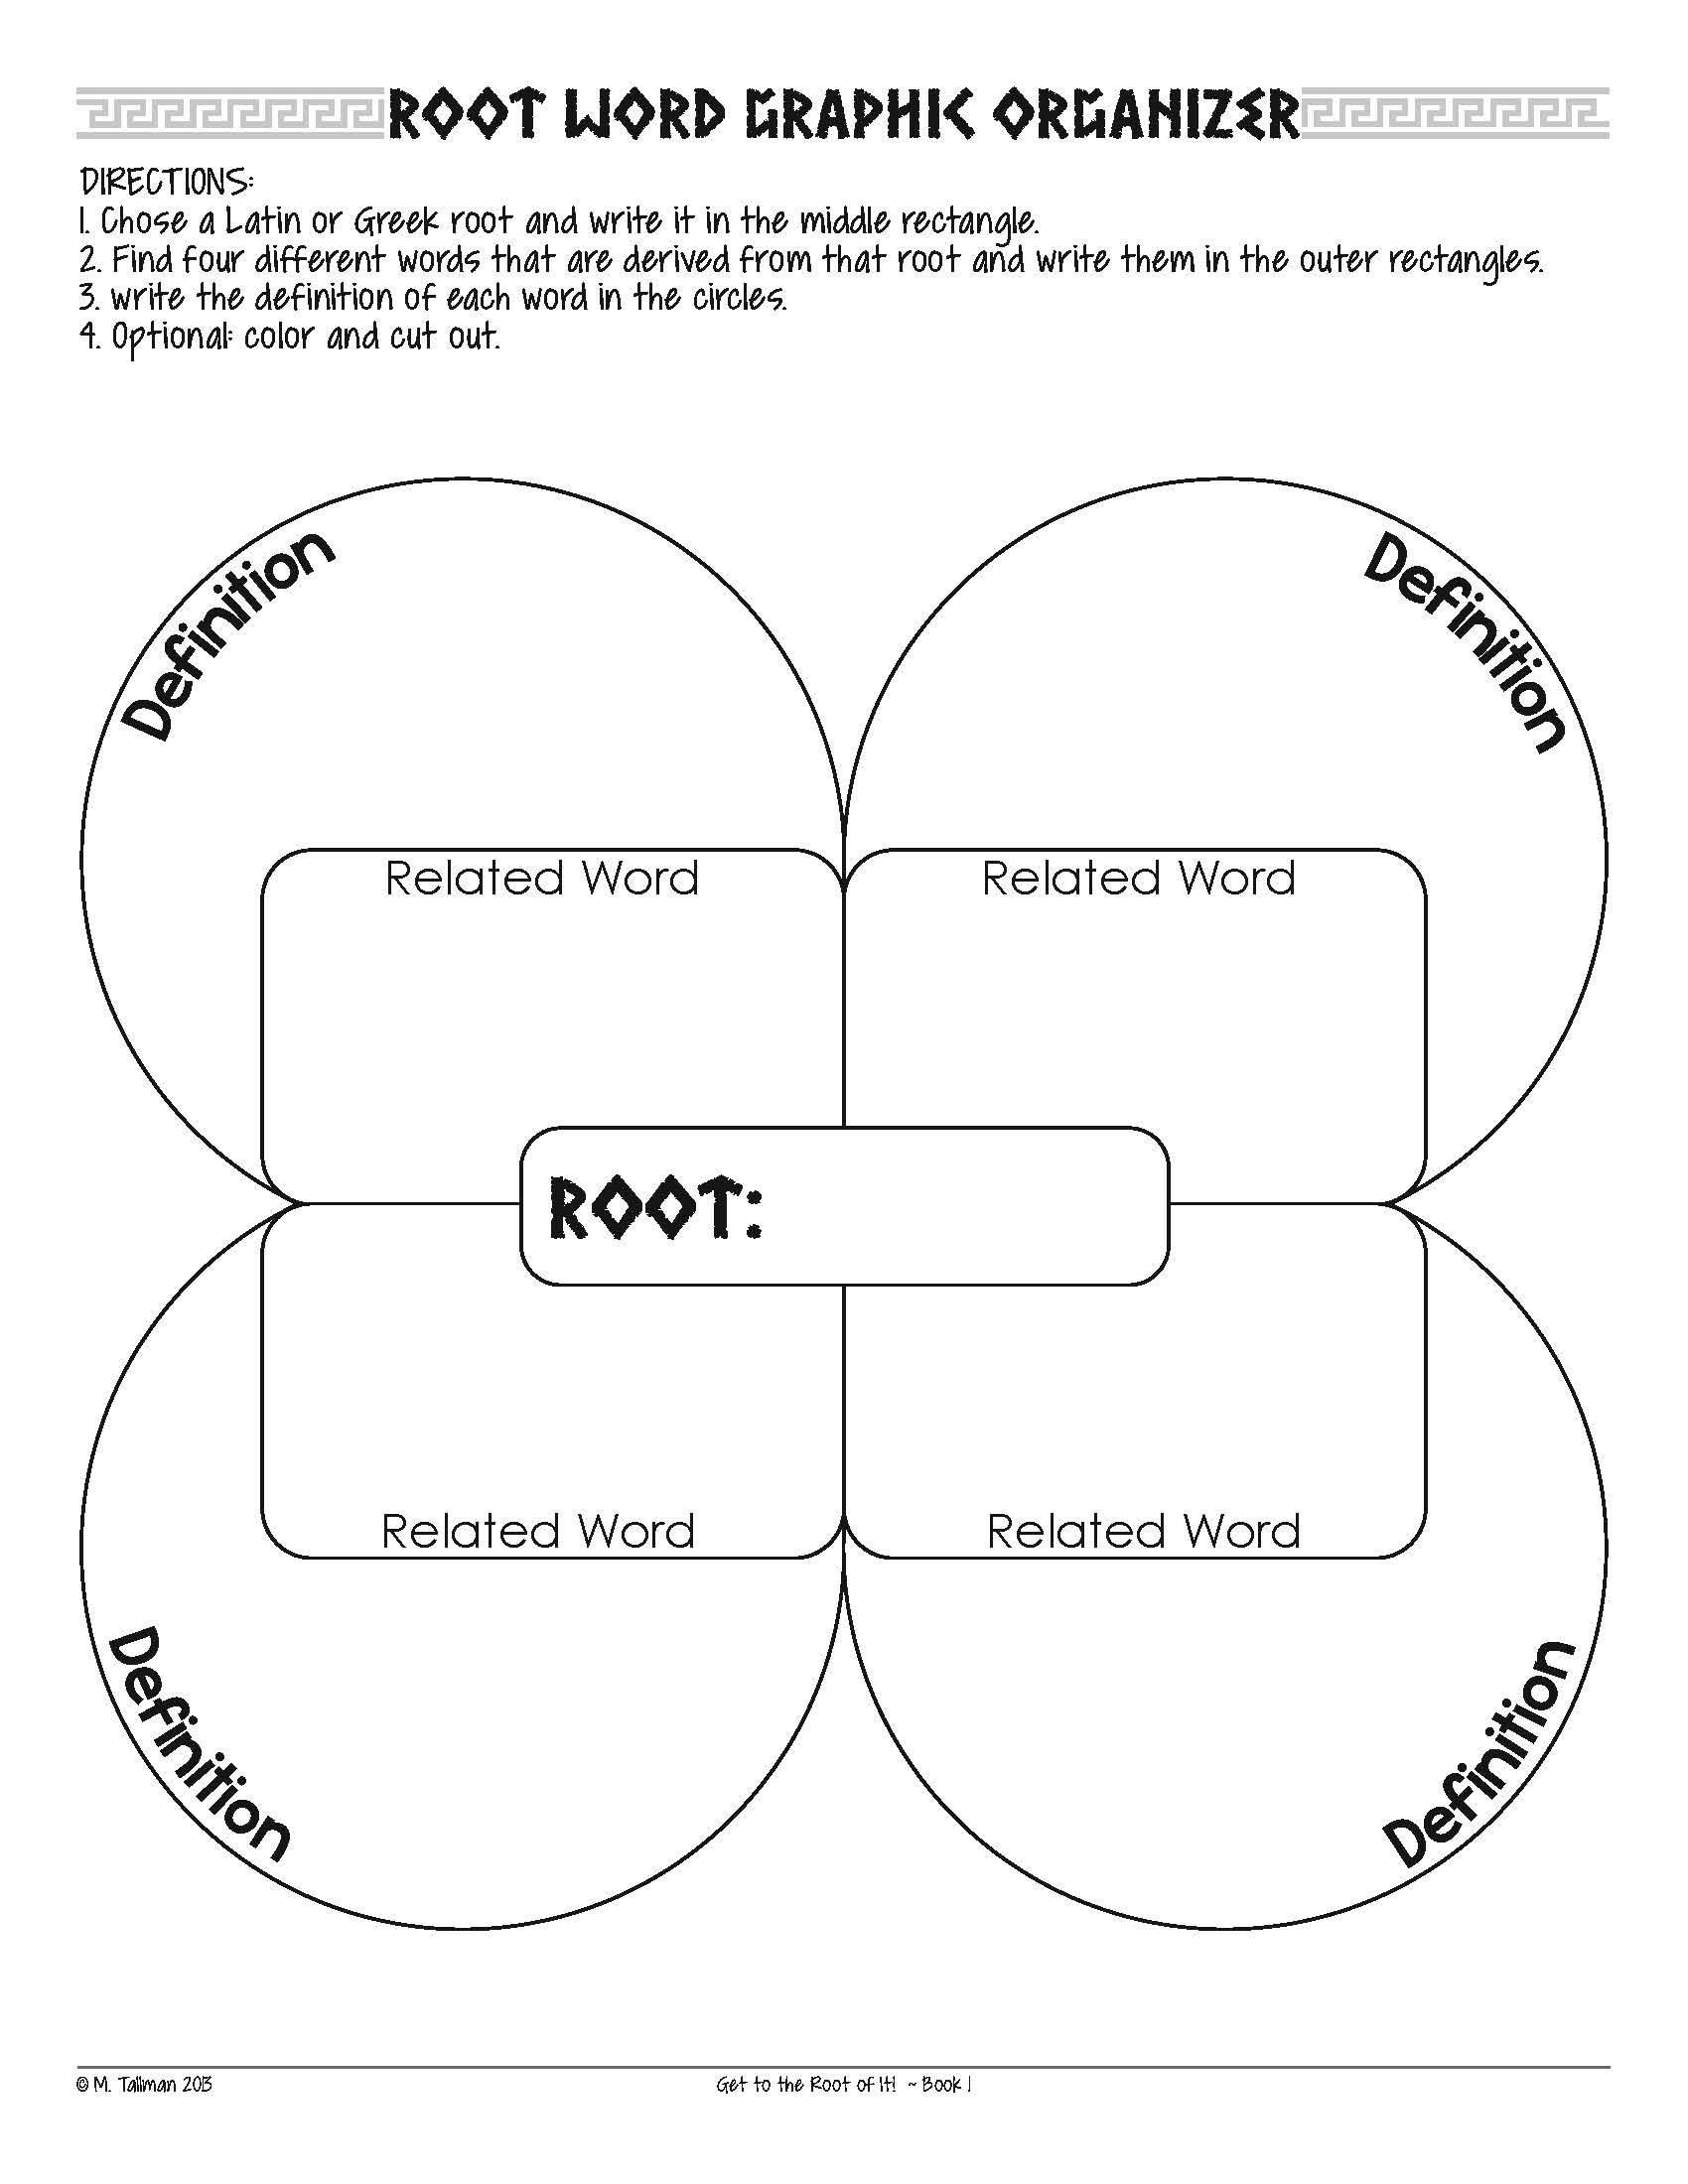 Root Words Worksheet 5th Grade Image Result for Word Study Activity Sheet 5th Grade Root